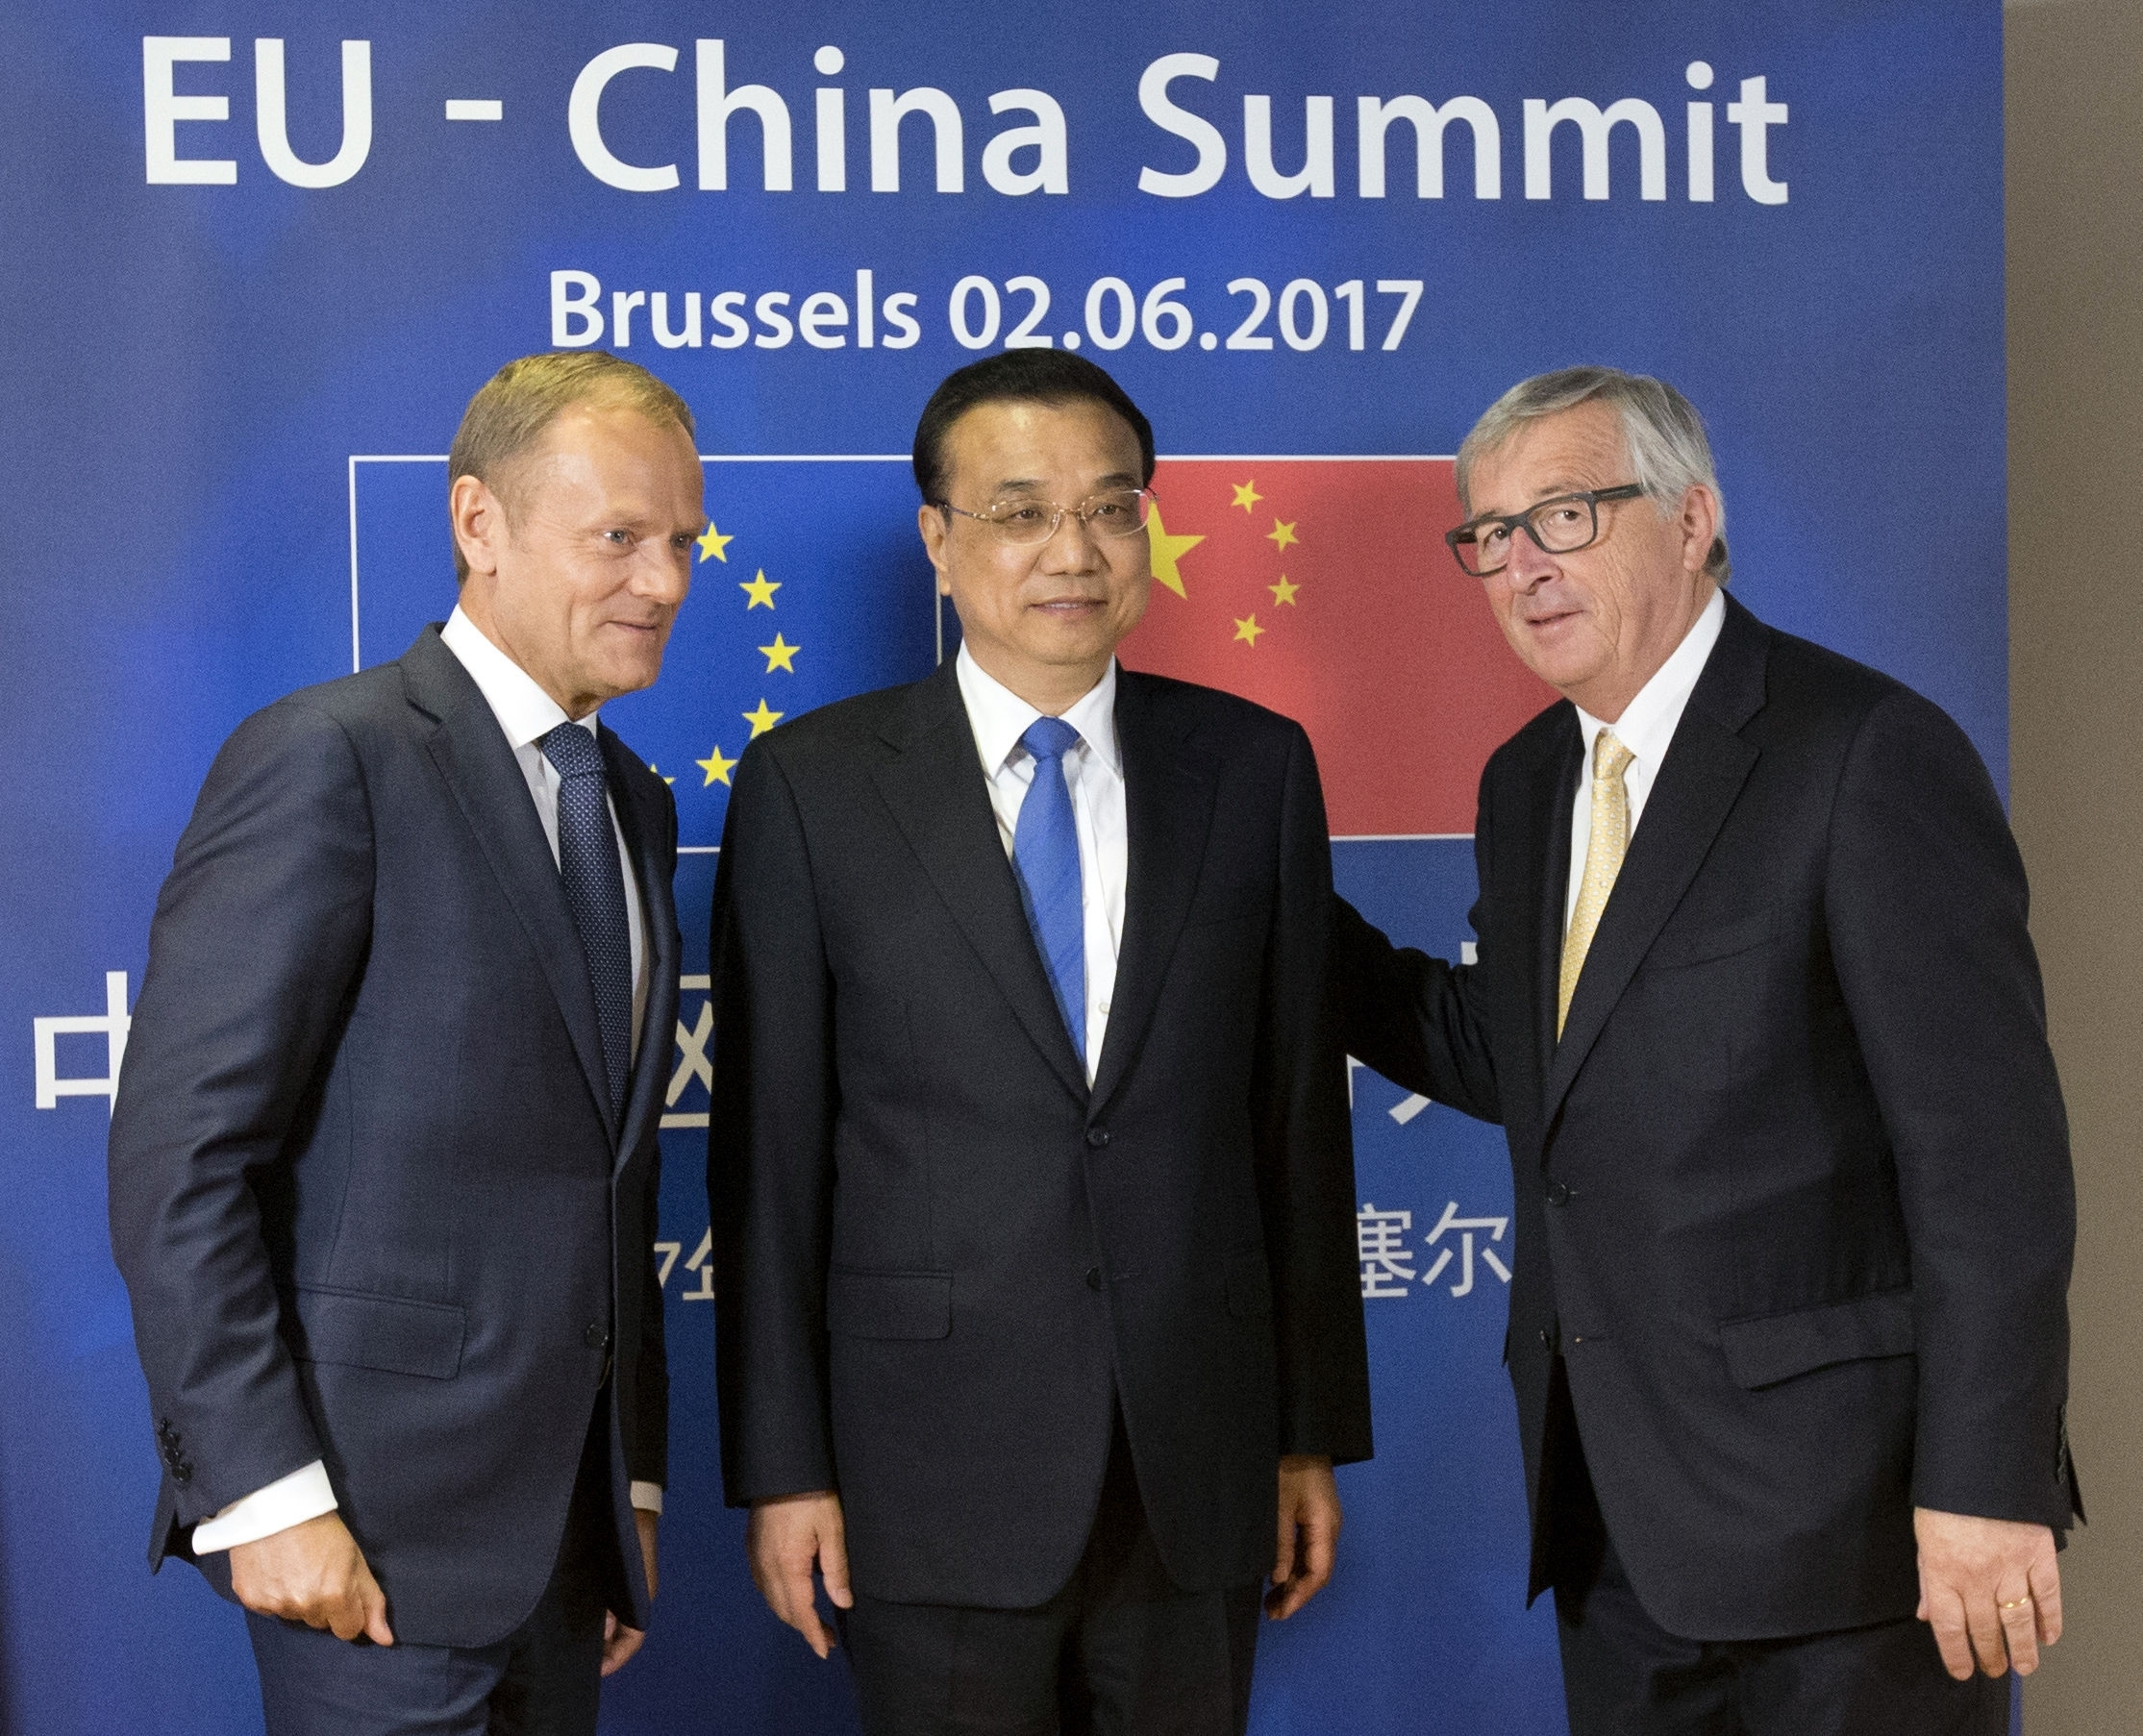 European Commission President Jean-Claude Juncker, right, and European Council President Donald Tusk, left, pose with Chinese Premier Li Keqiang prior to a meeting at the EU-China summit in Brussels, on Friday, June 2, 2017. (Olivier Hoslet, Pool Photo via AP)